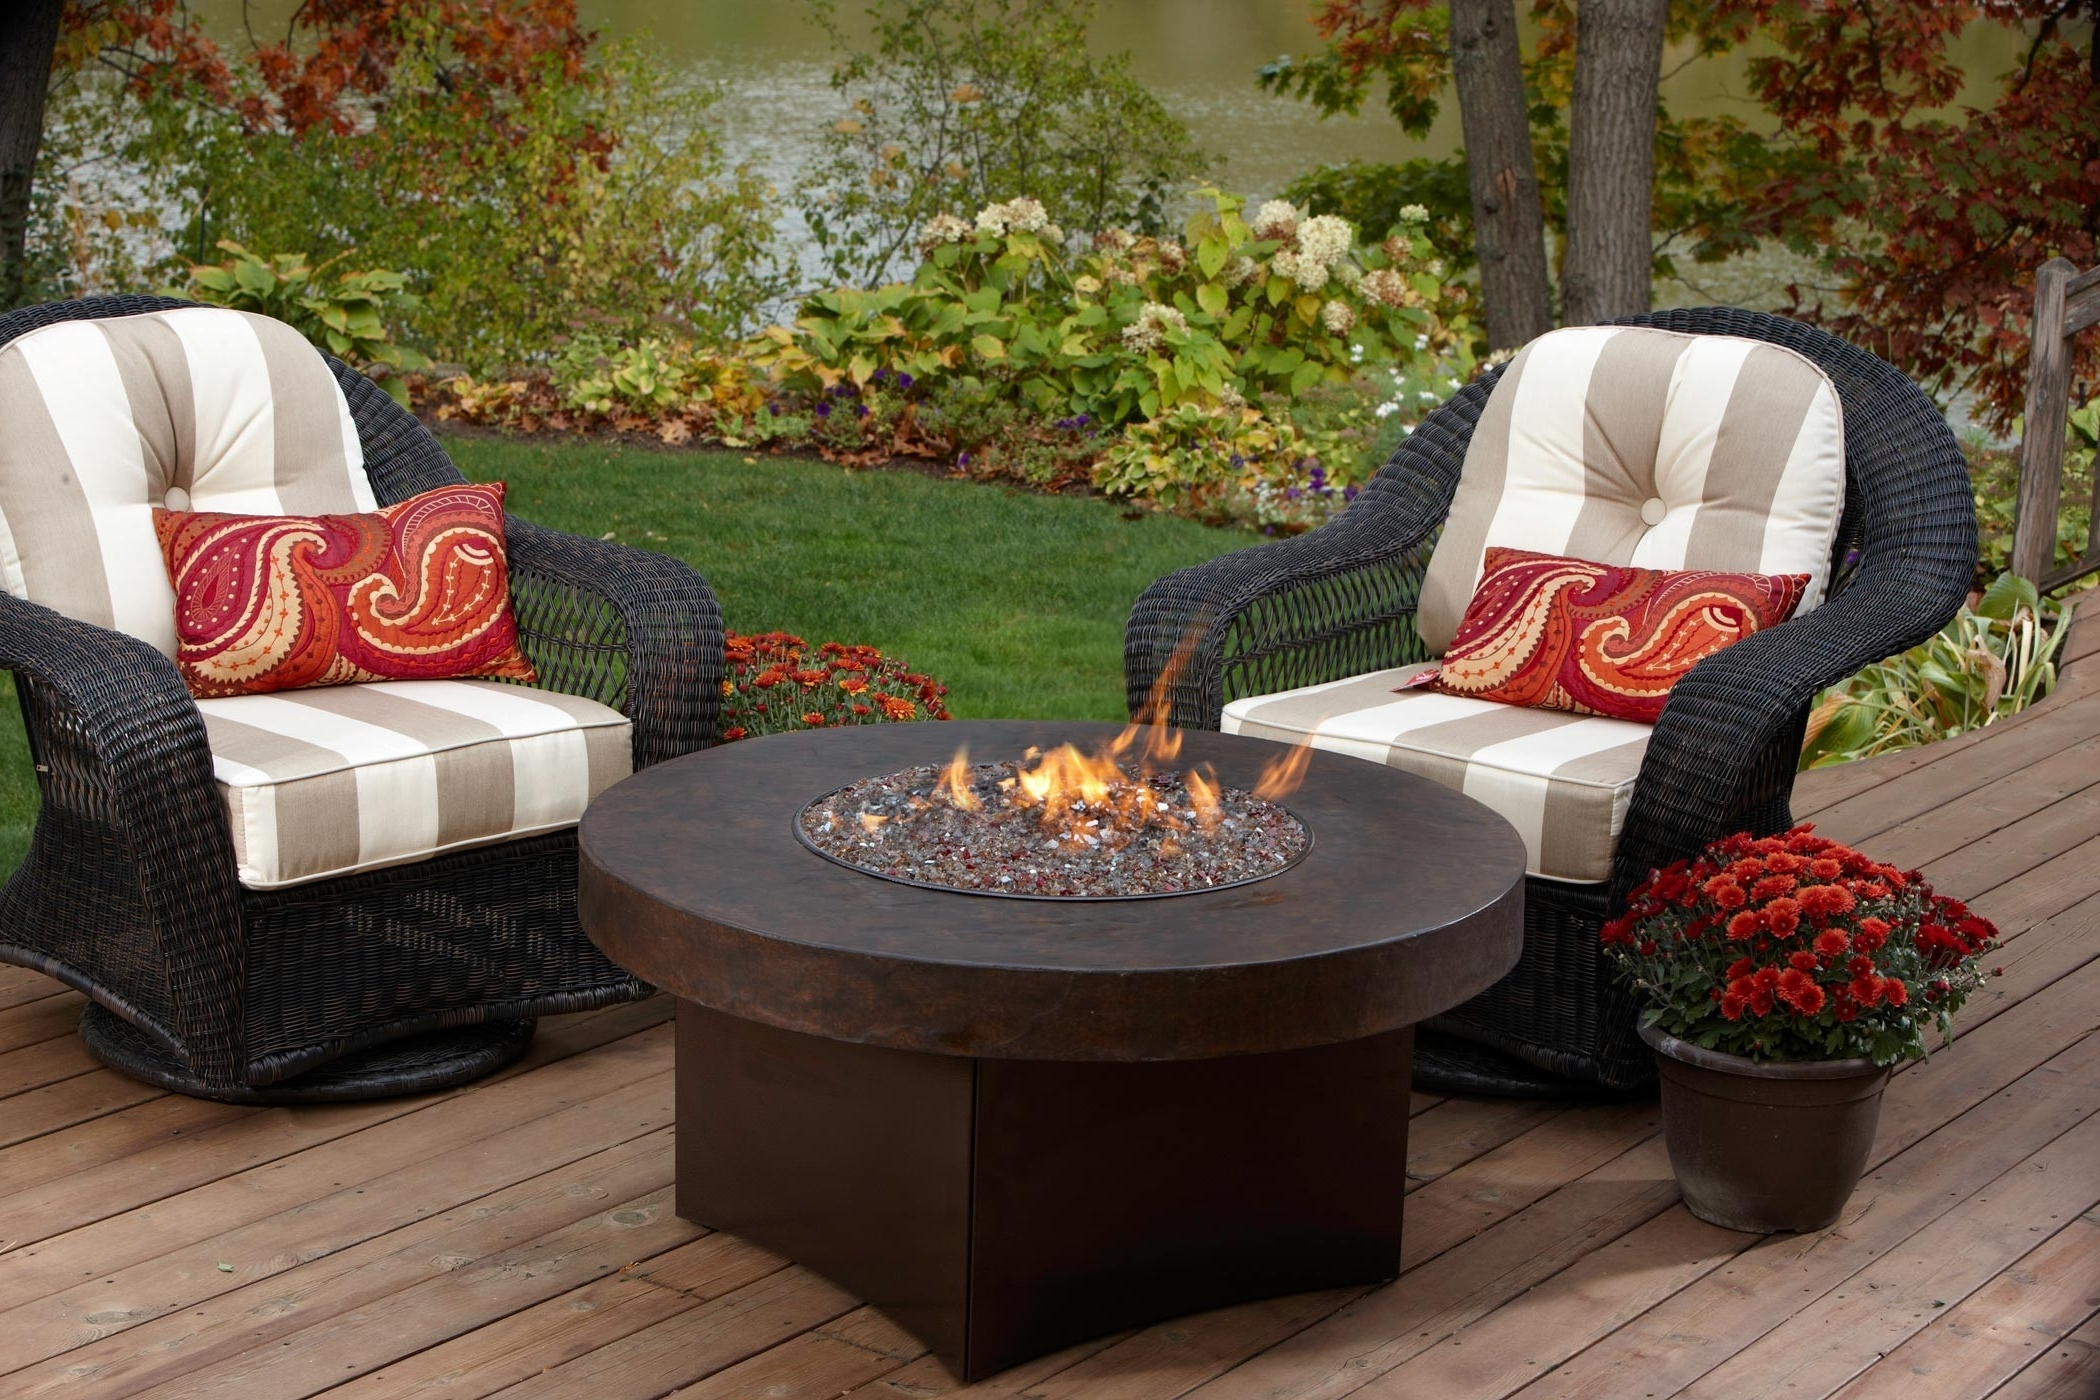 Patio Conversation Sets With Propane Fire Pit For Most Current Fundamentals Patio Table With Gas Fire Pit Give The Warmth In (View 14 of 20)